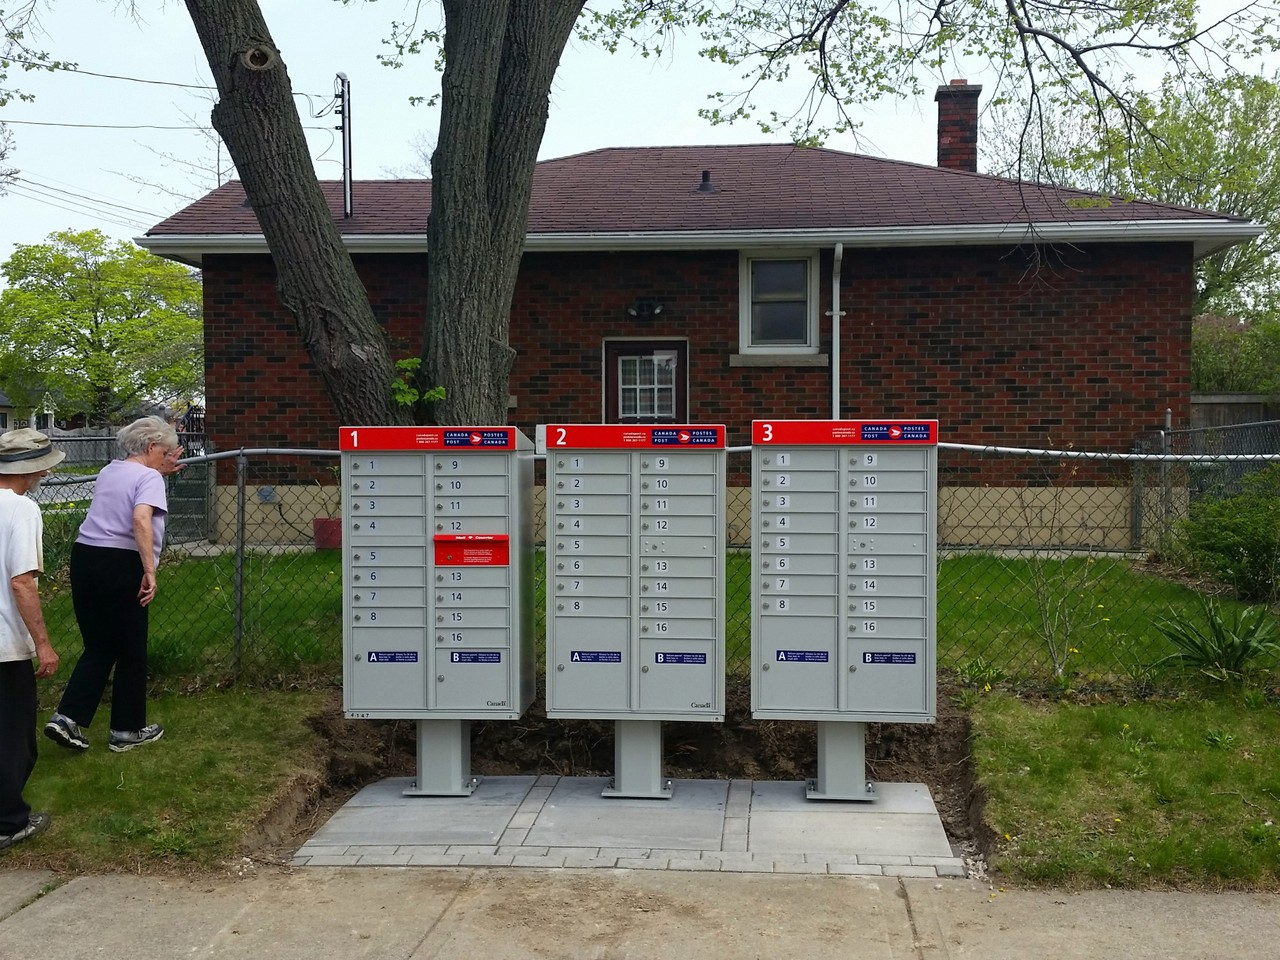 Mailboxes installed directly in the drip line of a tree